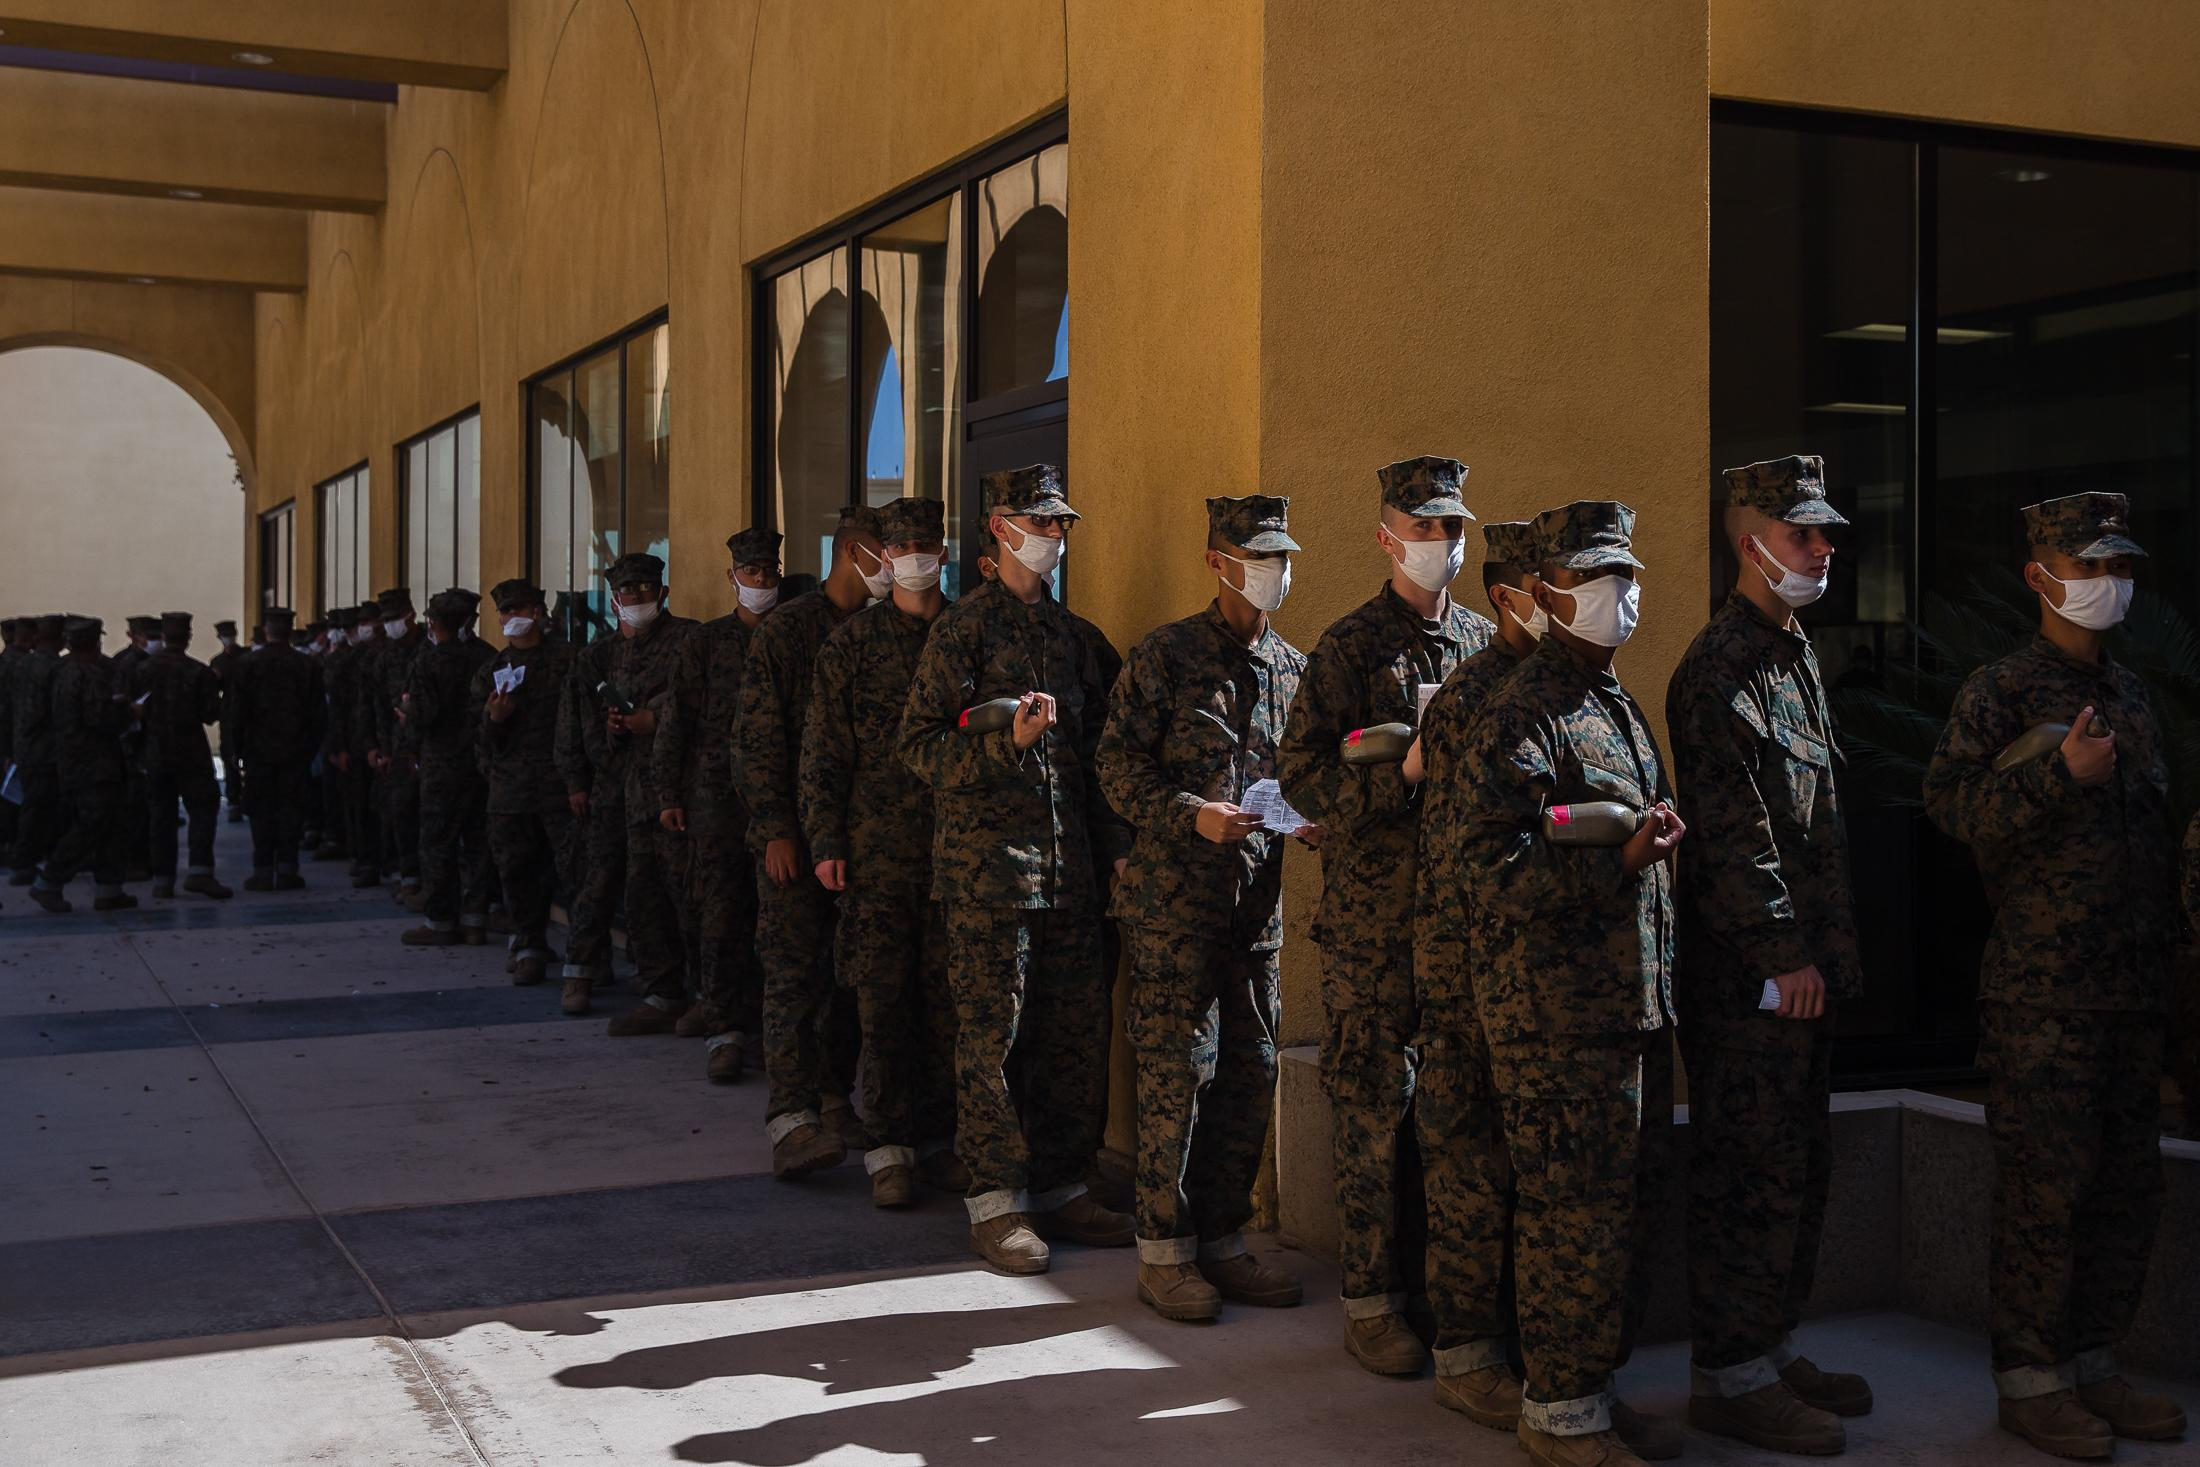 Men wait in line for chow time at the Marine Corps Recruit Depot San Diego on October 8, 2020.